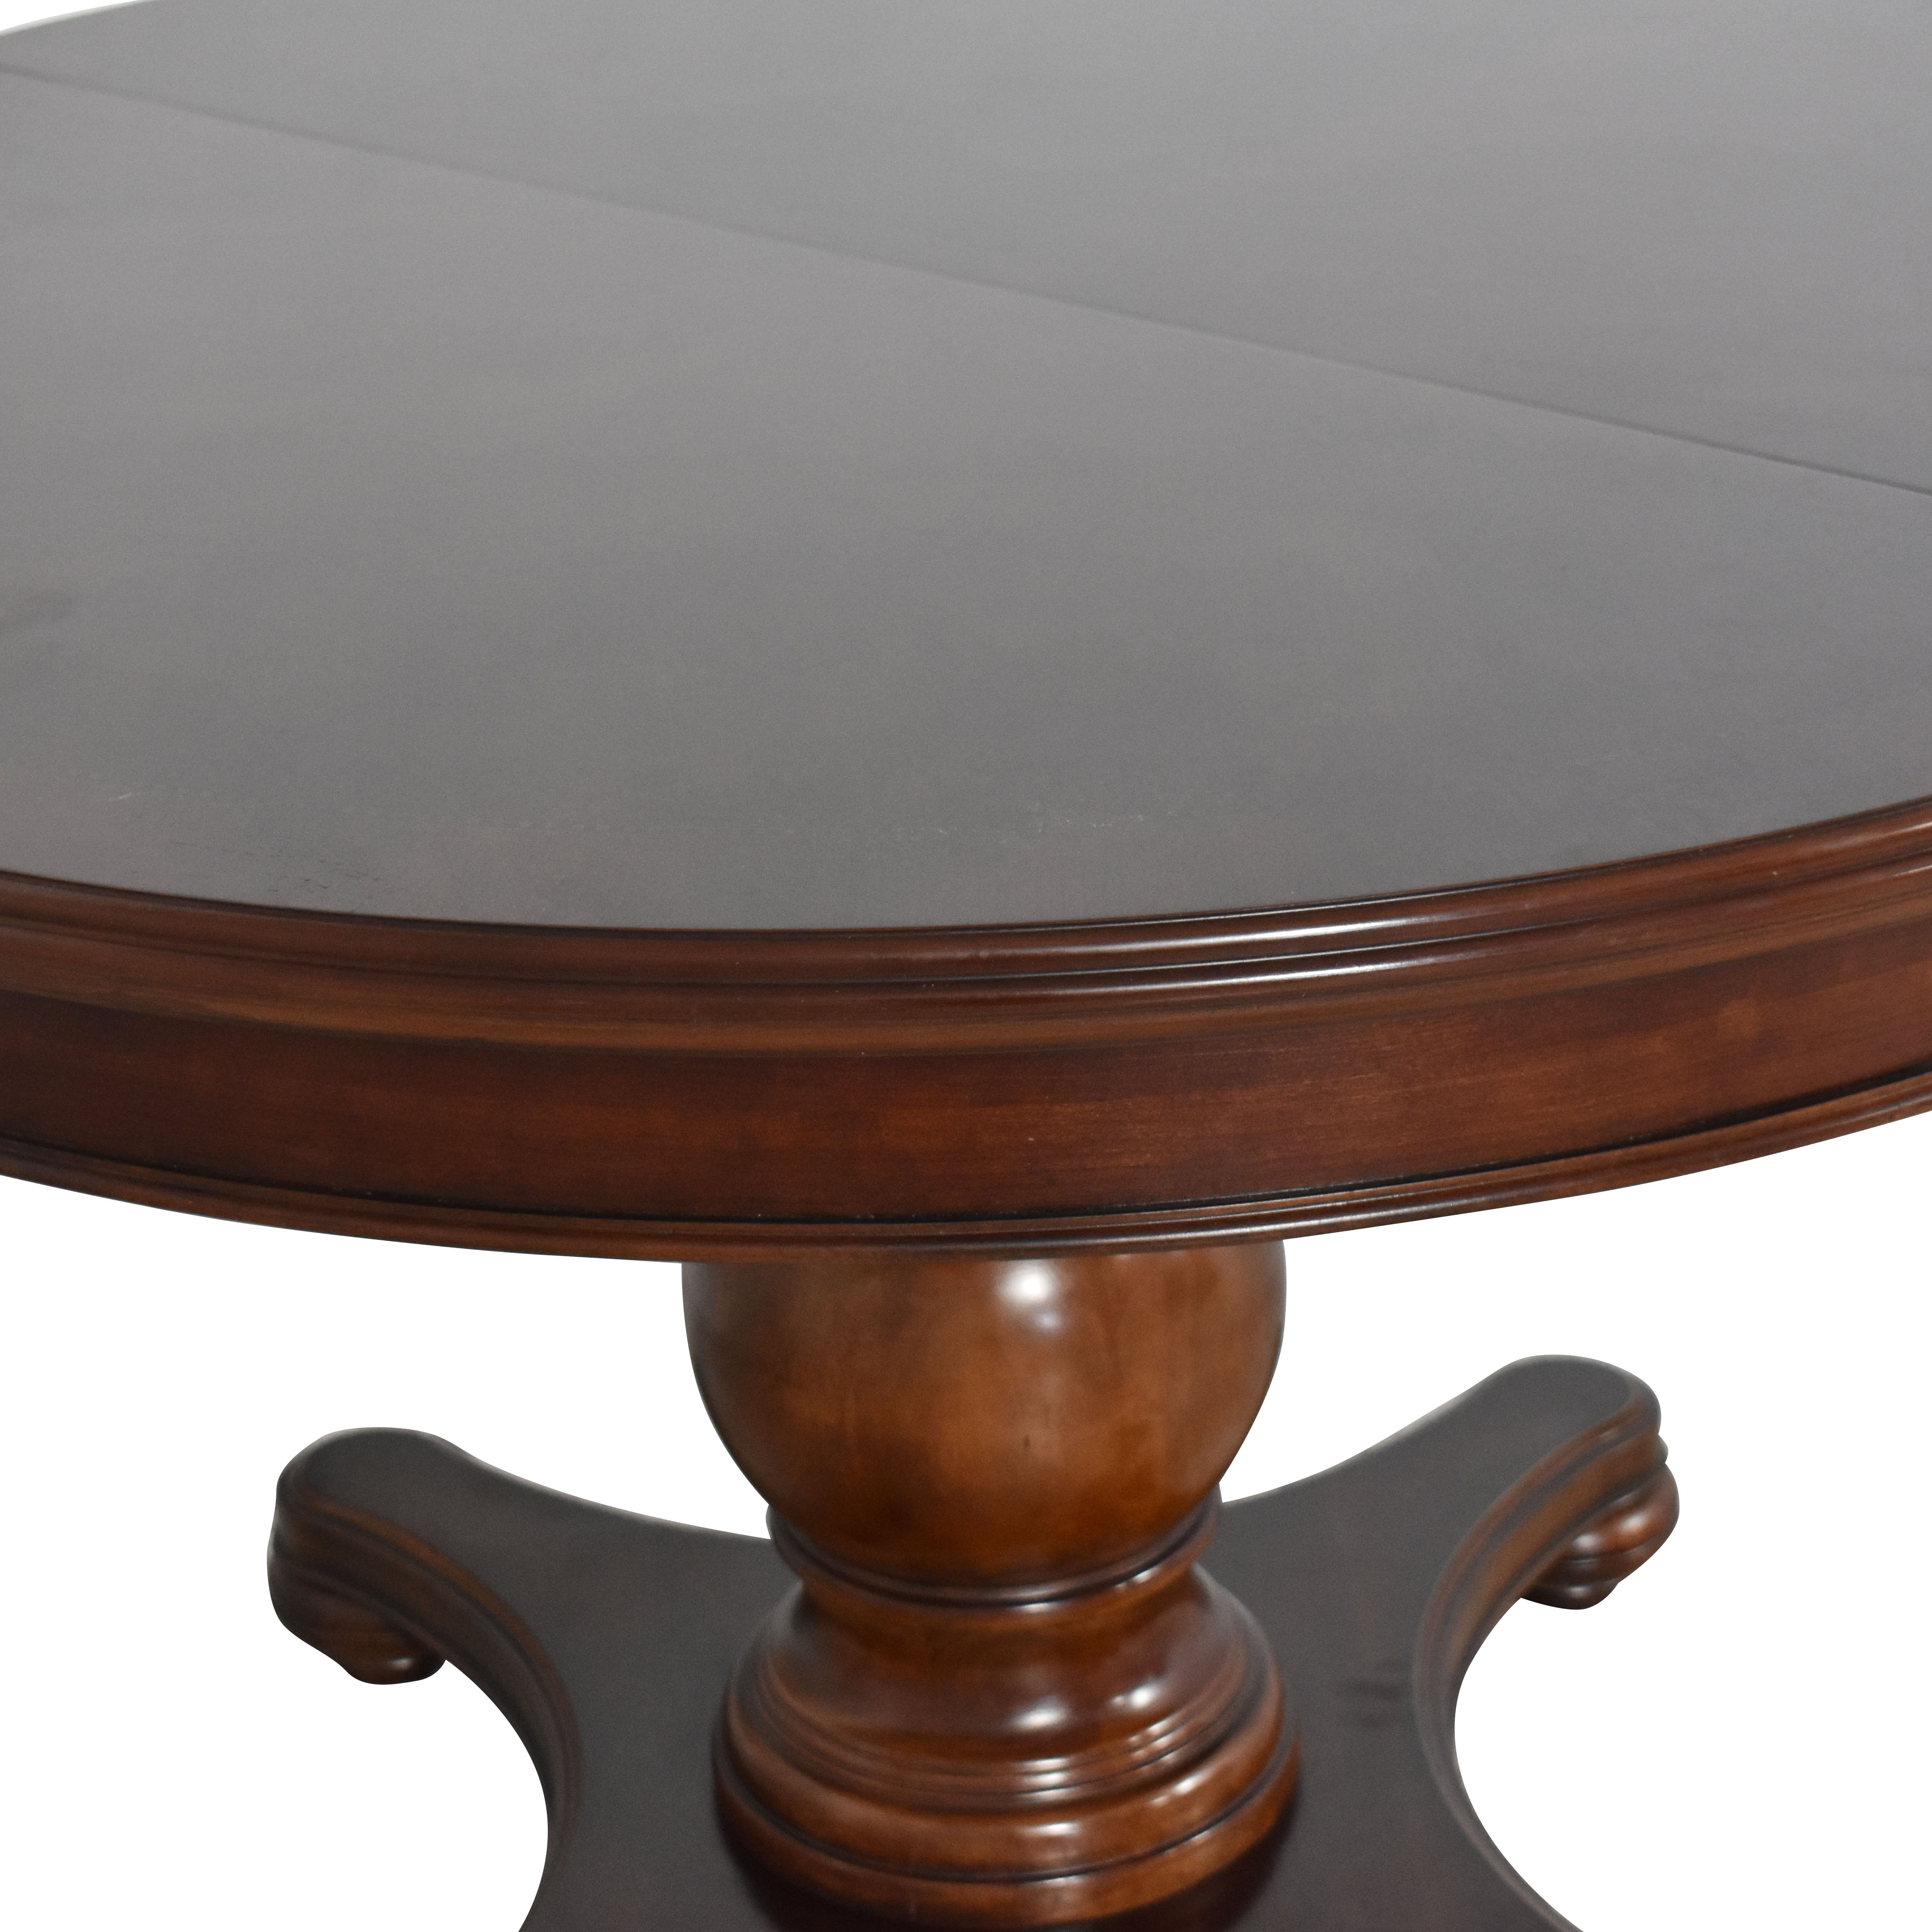 Macy's Macy's Extendable Dining Table on sale